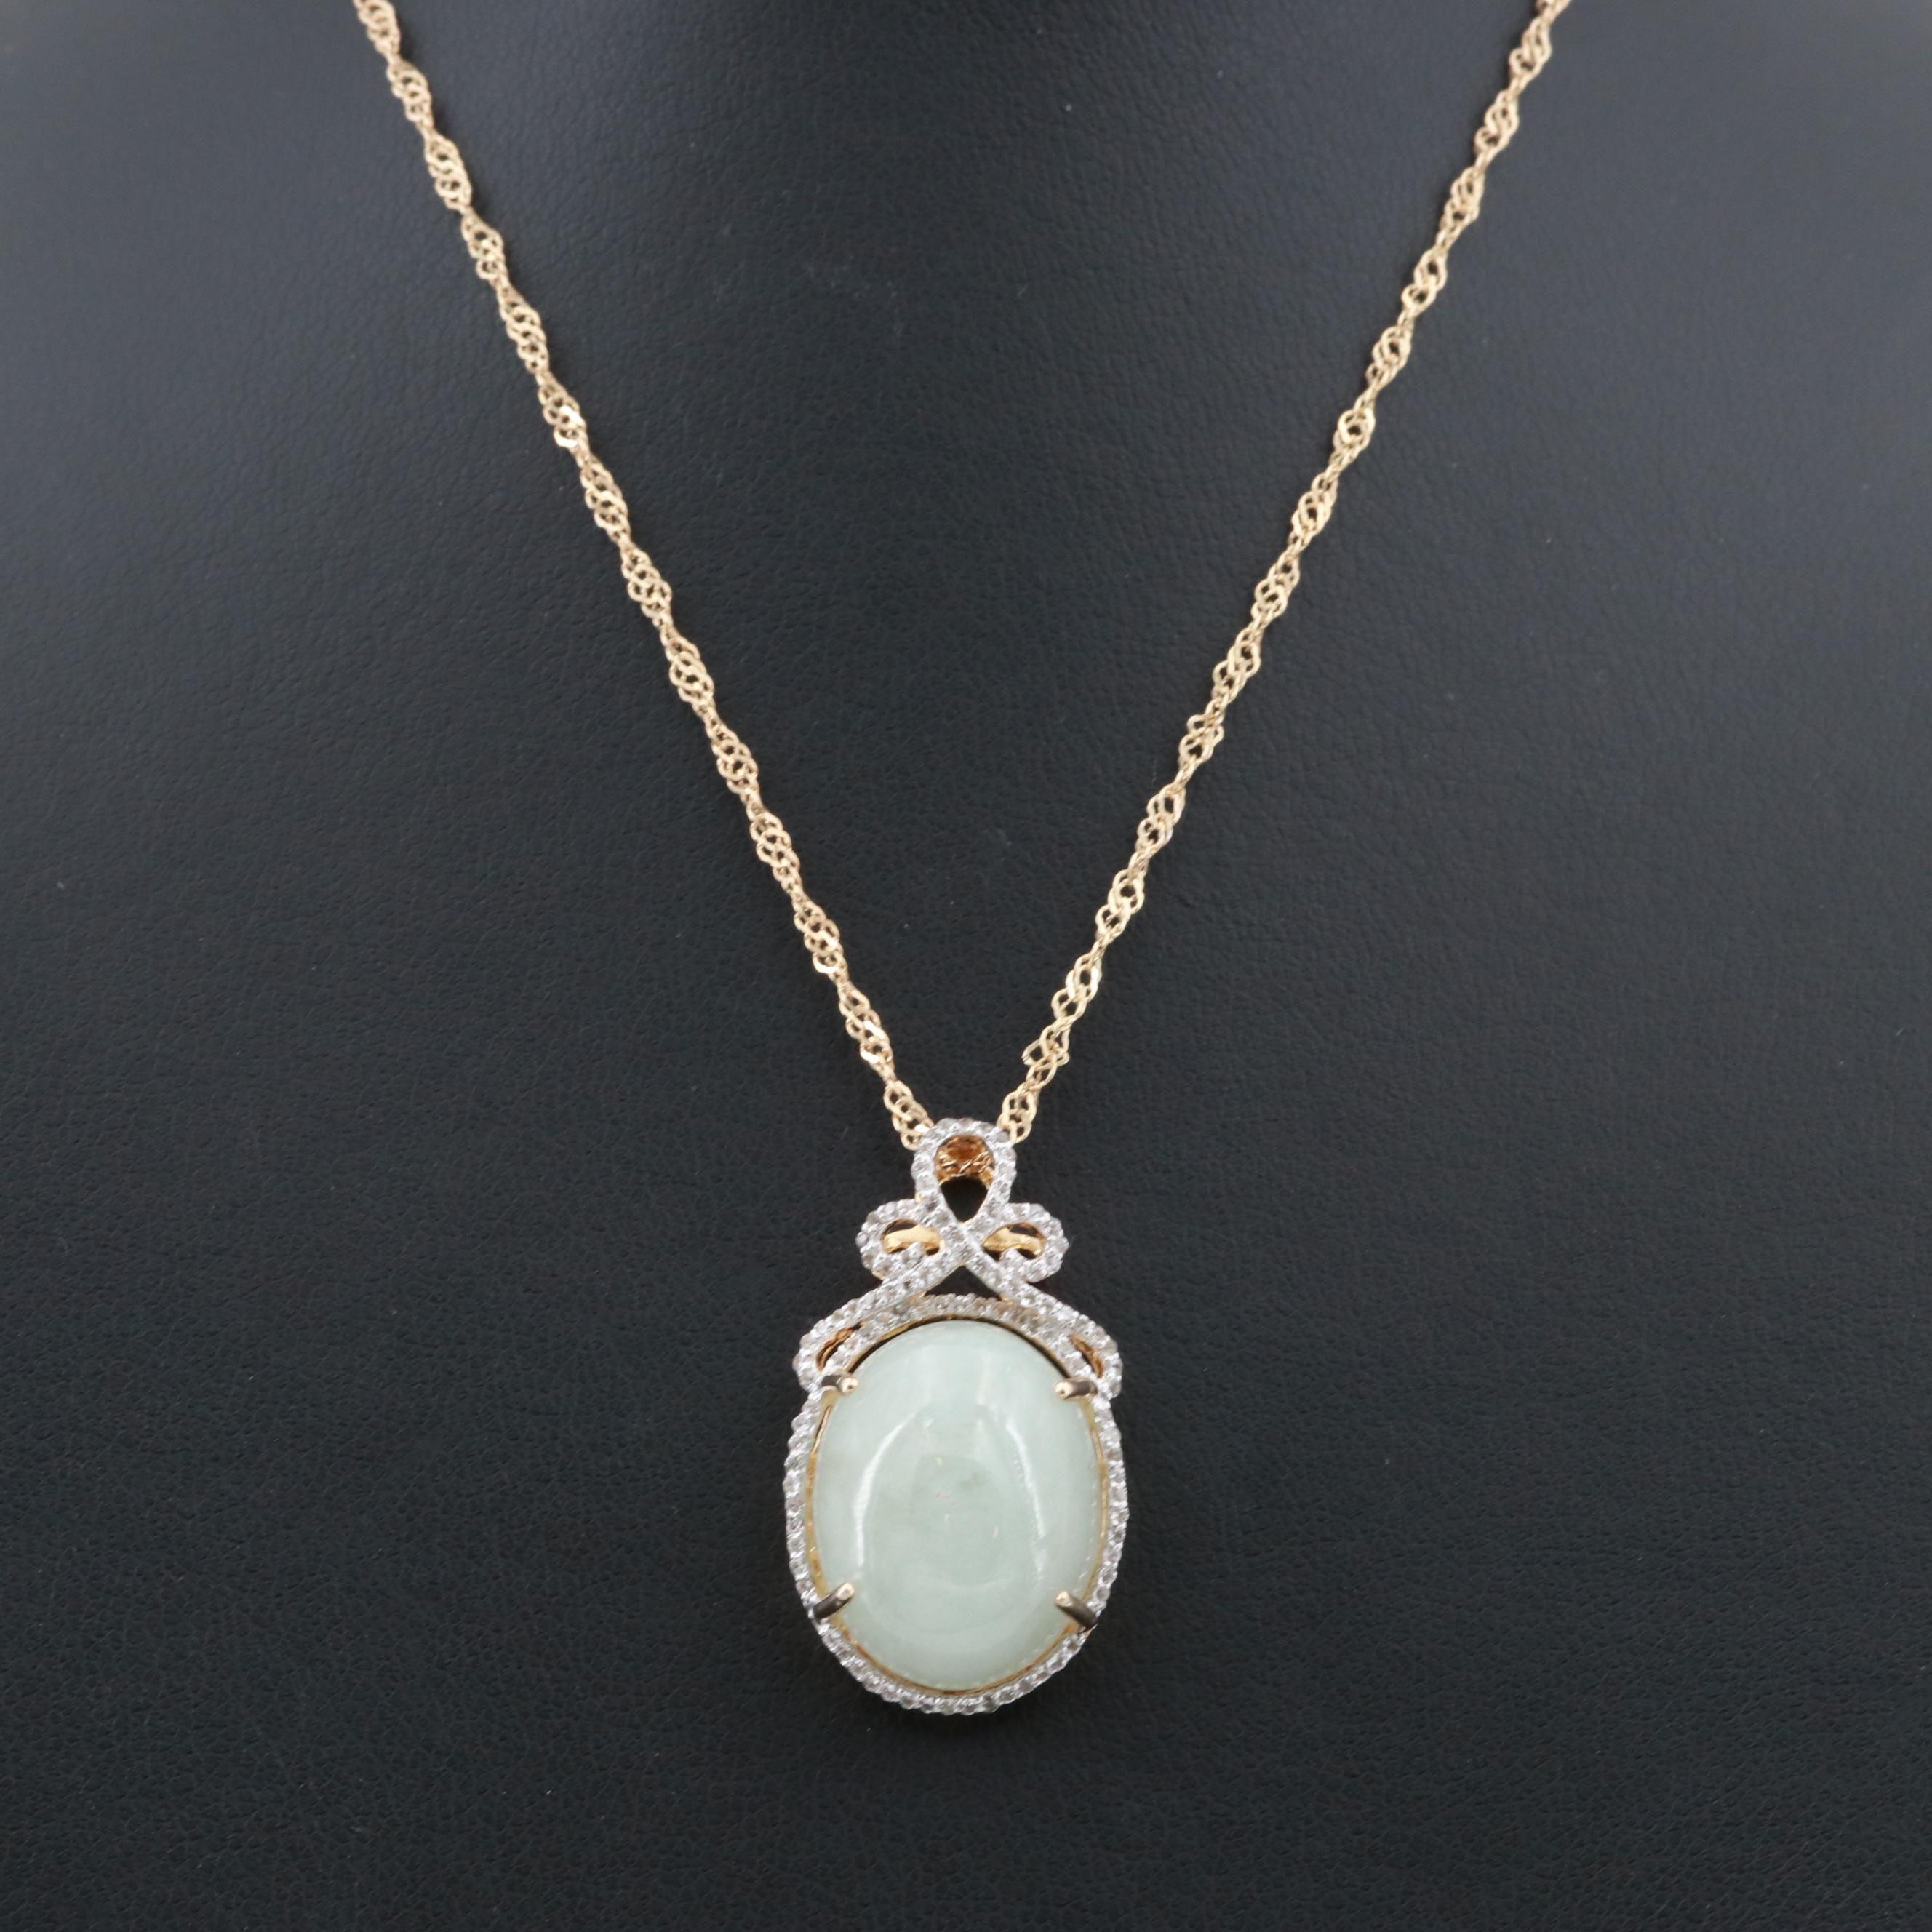 Gold Wash on Sterling Silver Jadeite and White Topaz Pendant Necklace